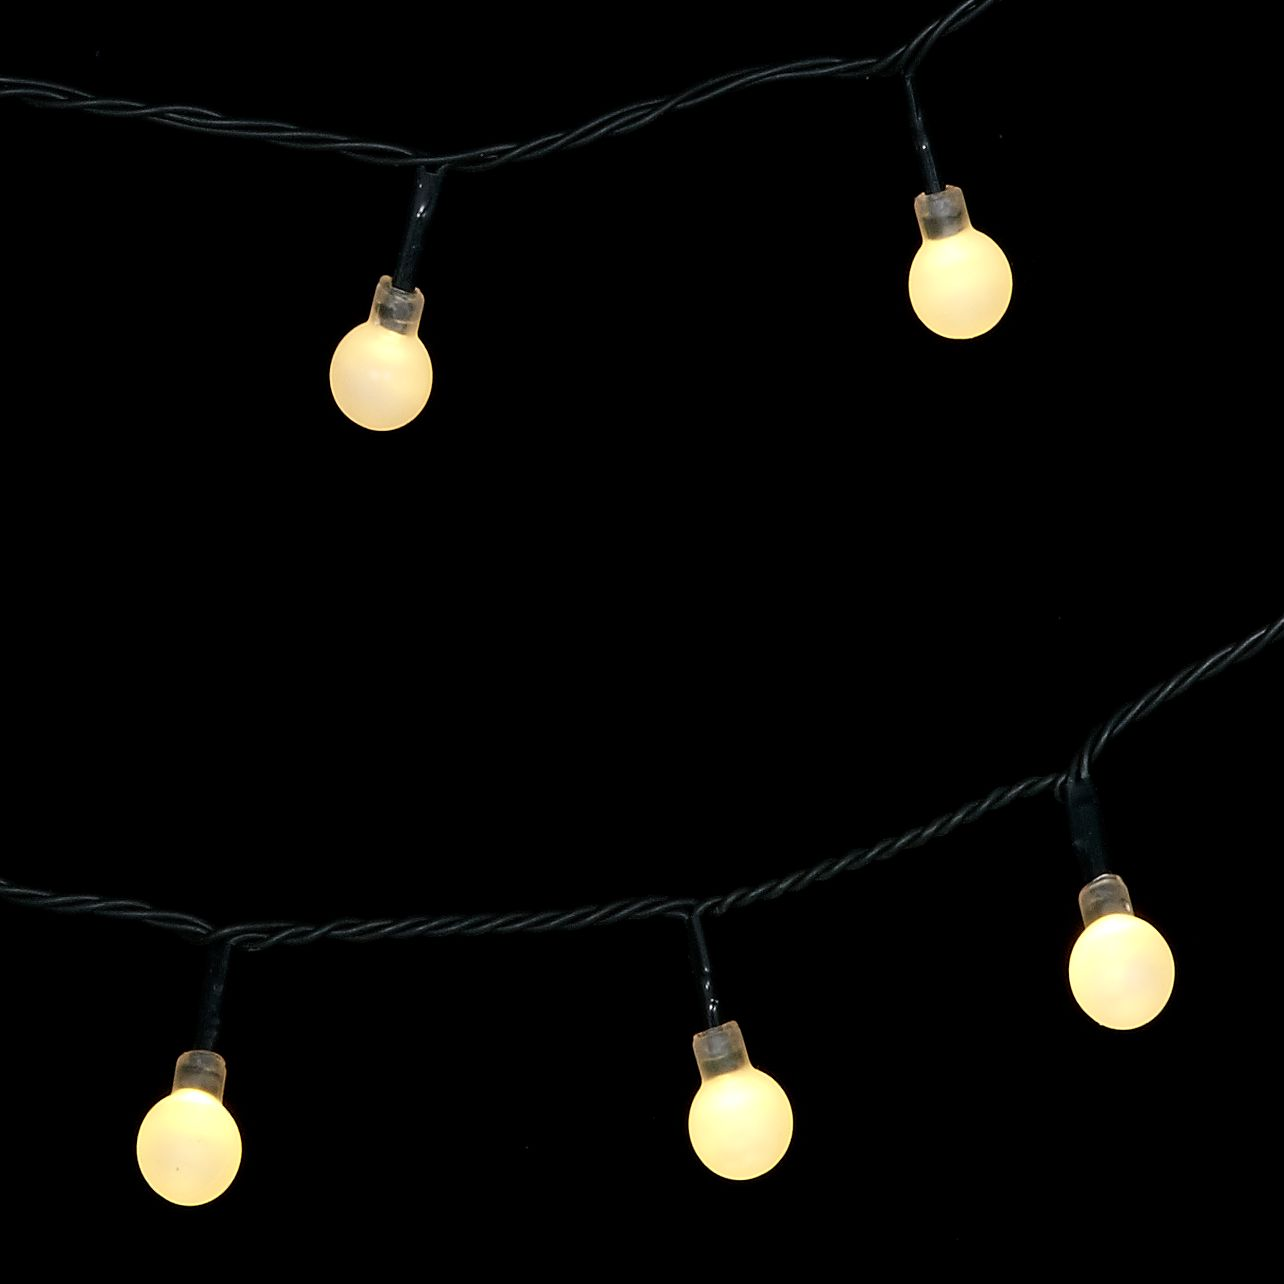 28 Luxury Outdoor String Lights John Lewis - pixelmari.com